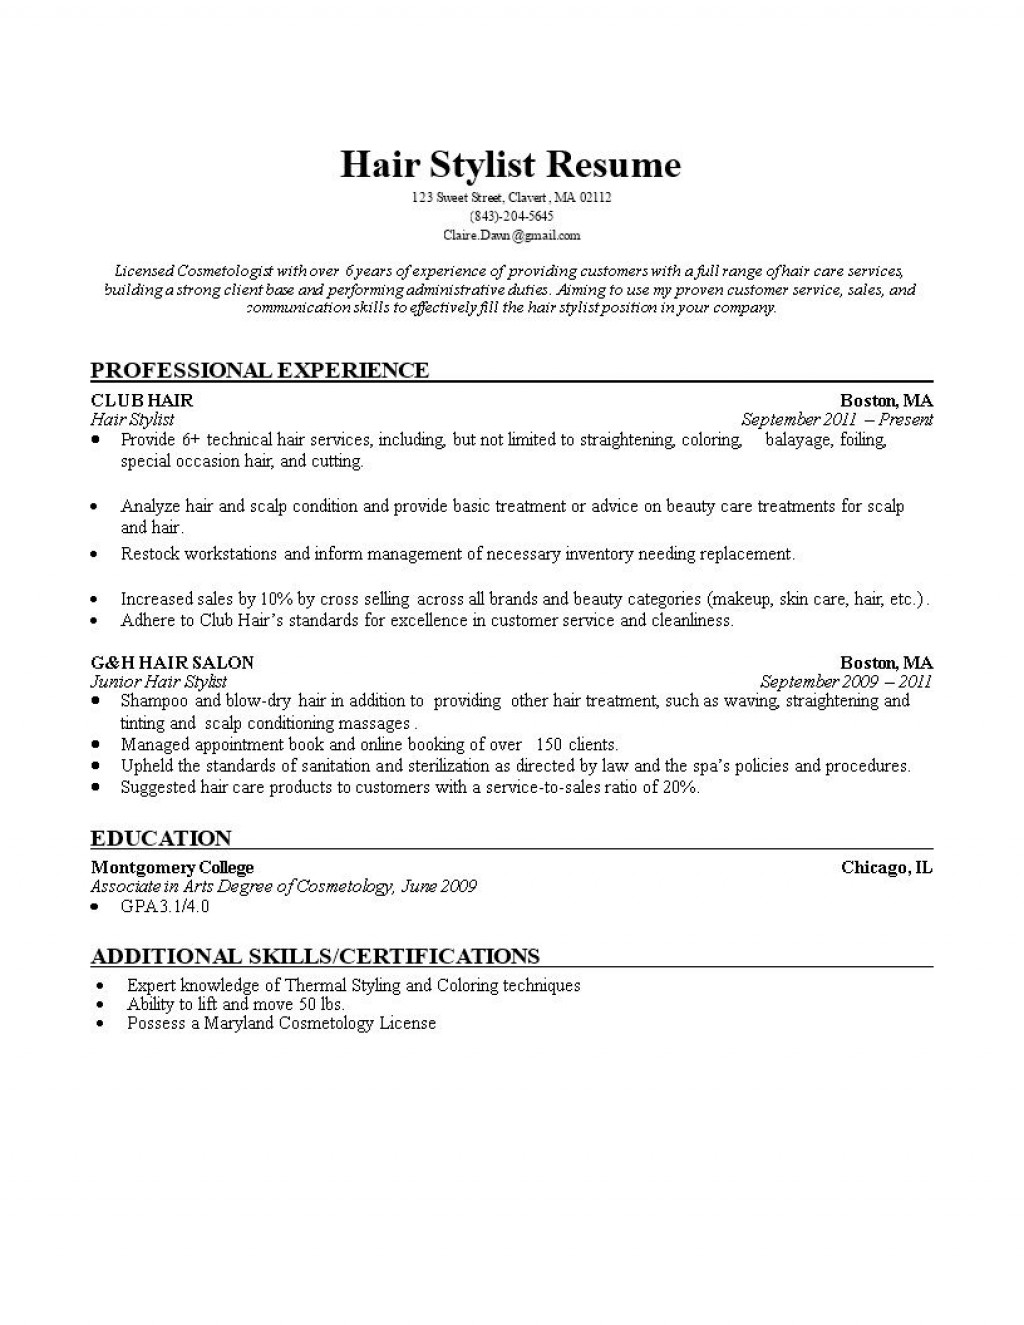 002 Impressive Hair Stylist Resume Template Picture  Word Free DownloadLarge